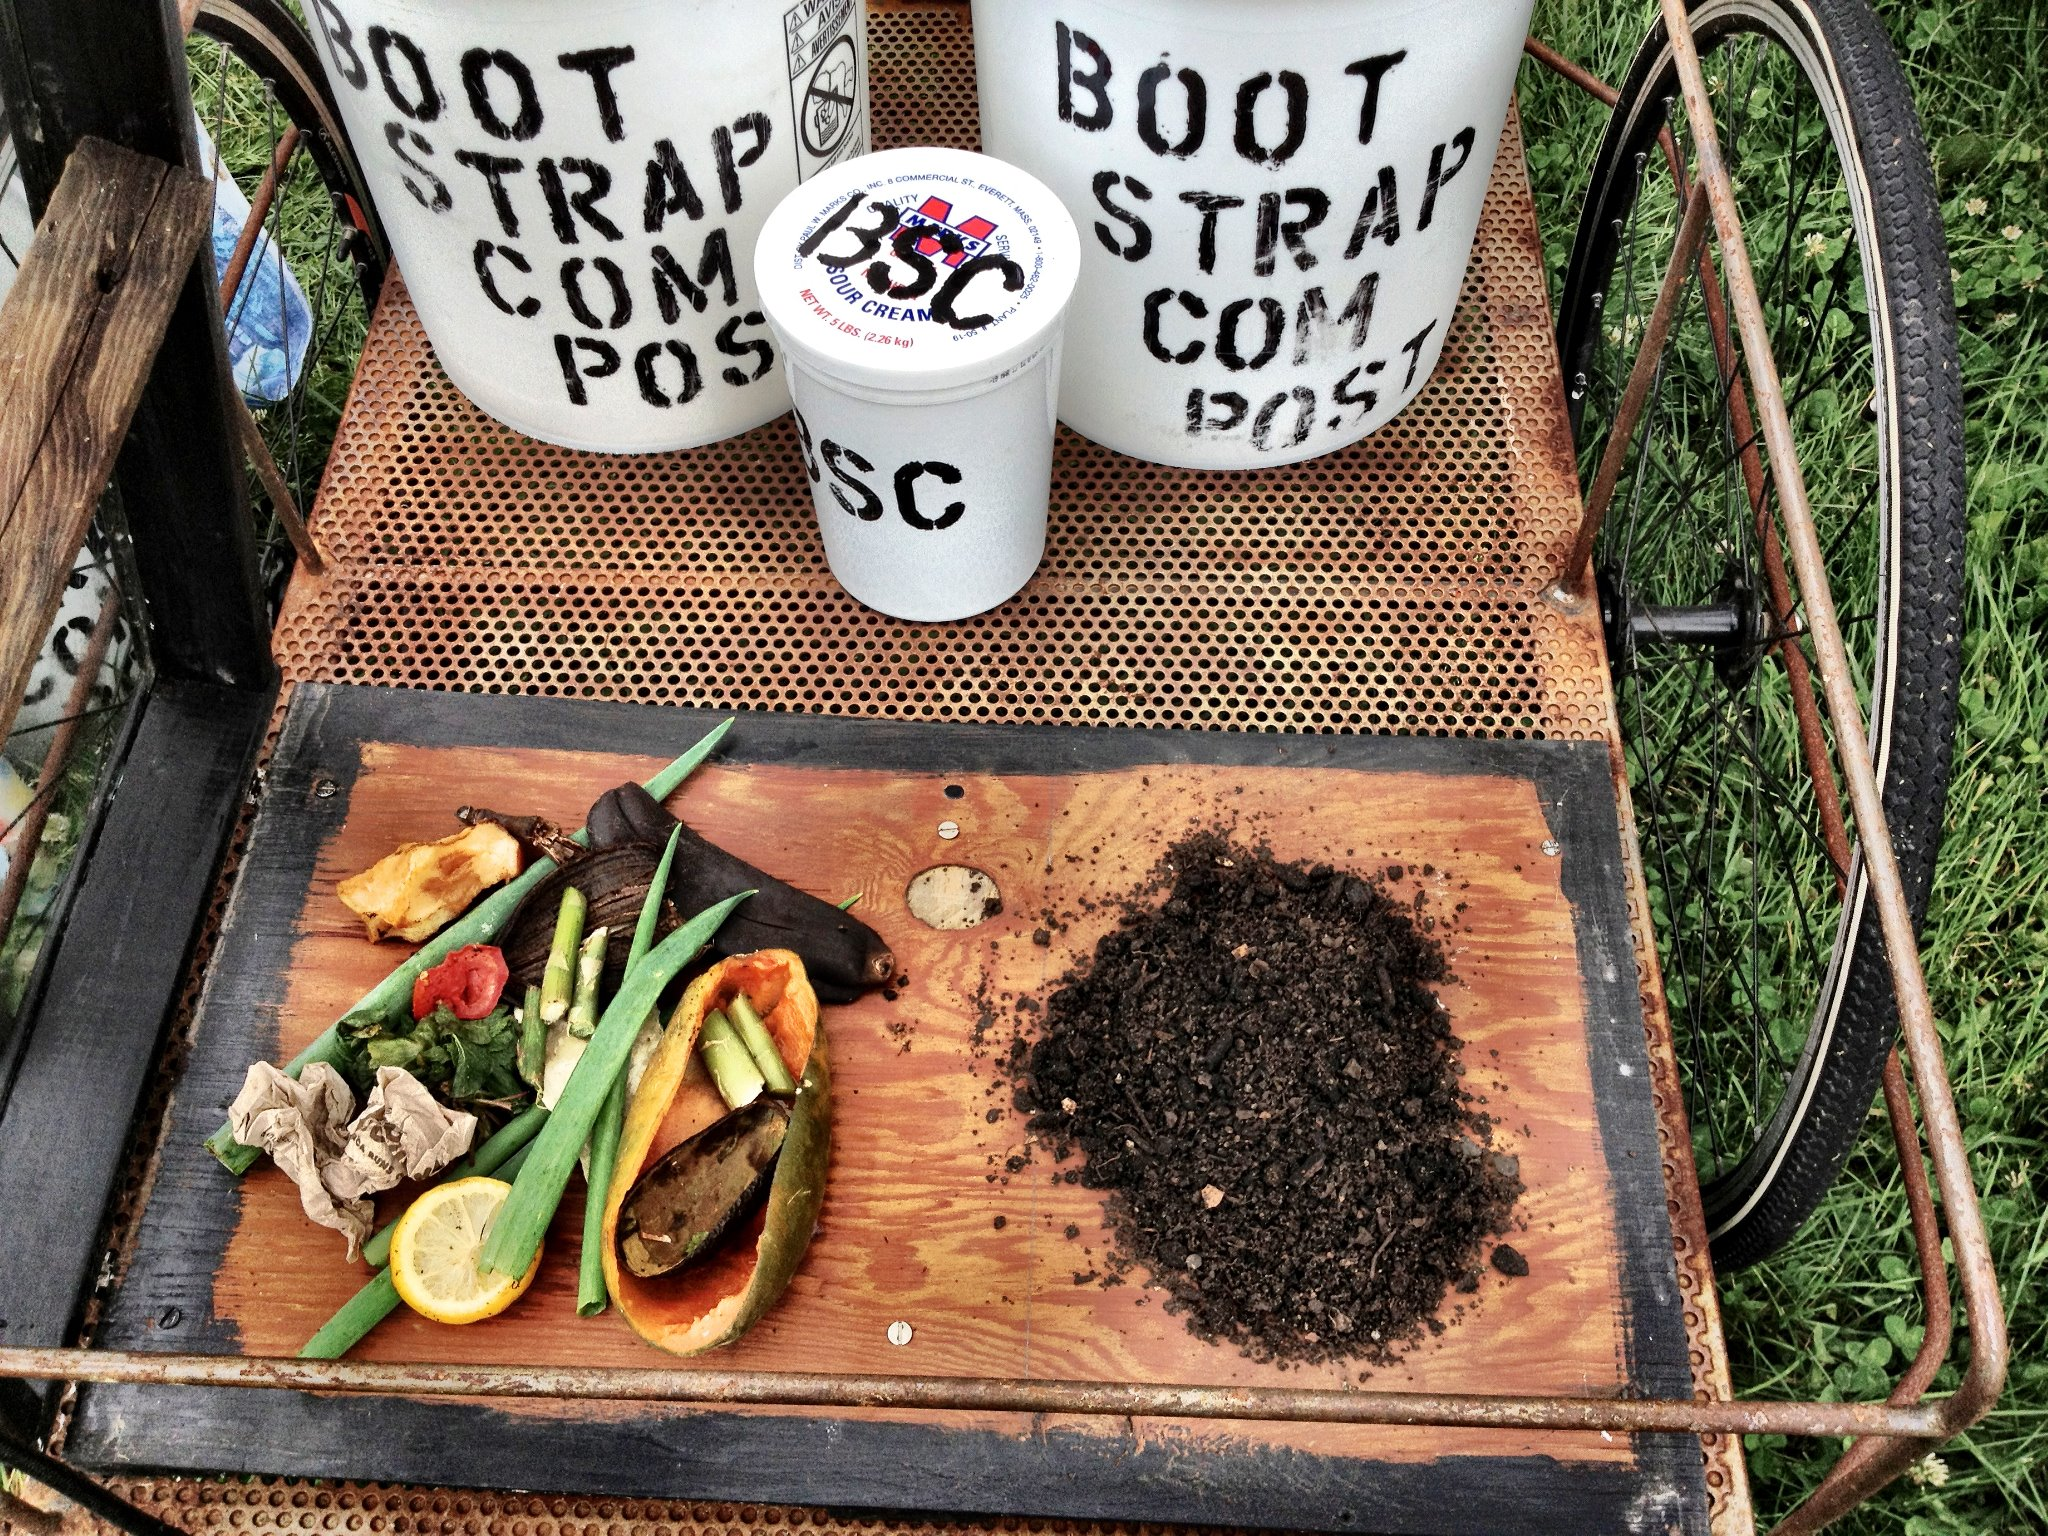 bootstrap-compost-gallons-compost